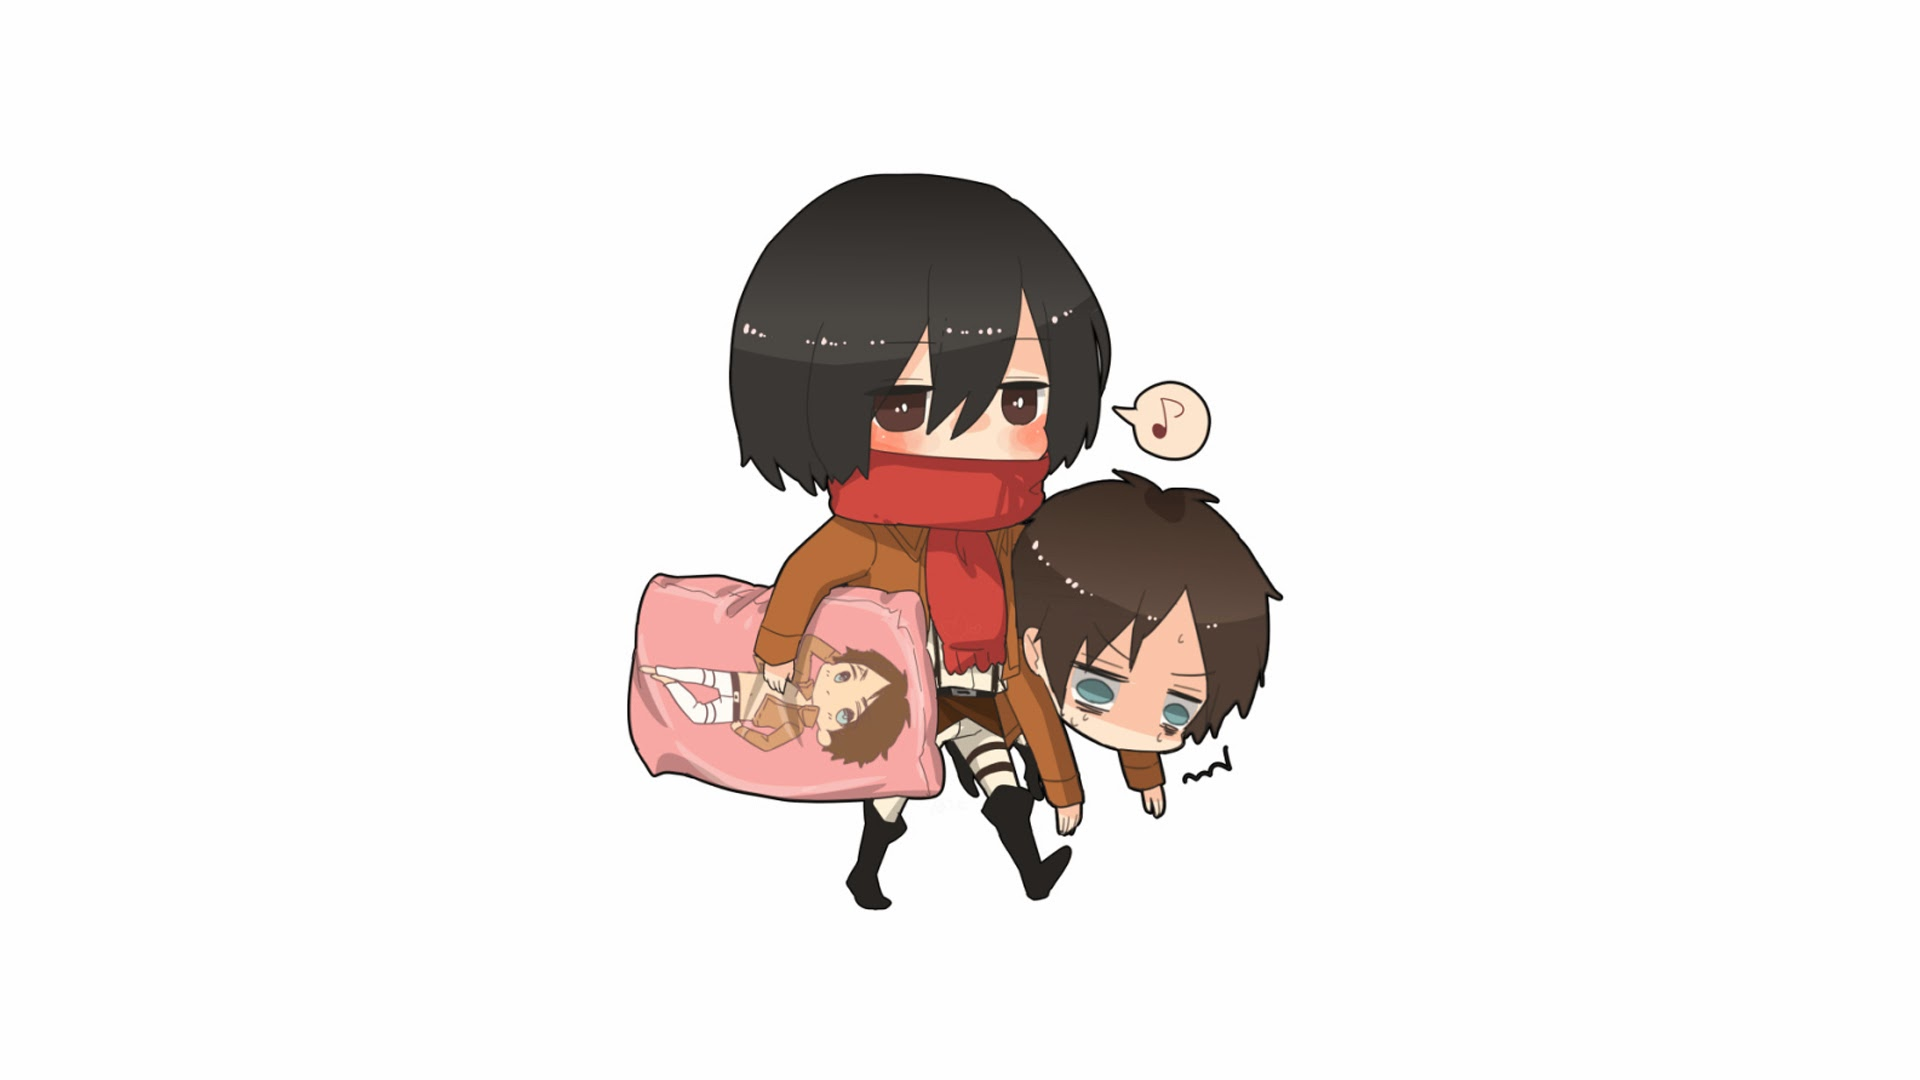 Mikasa adn Eren Chibi Anime 6r Wallpaper HD 1920x1080